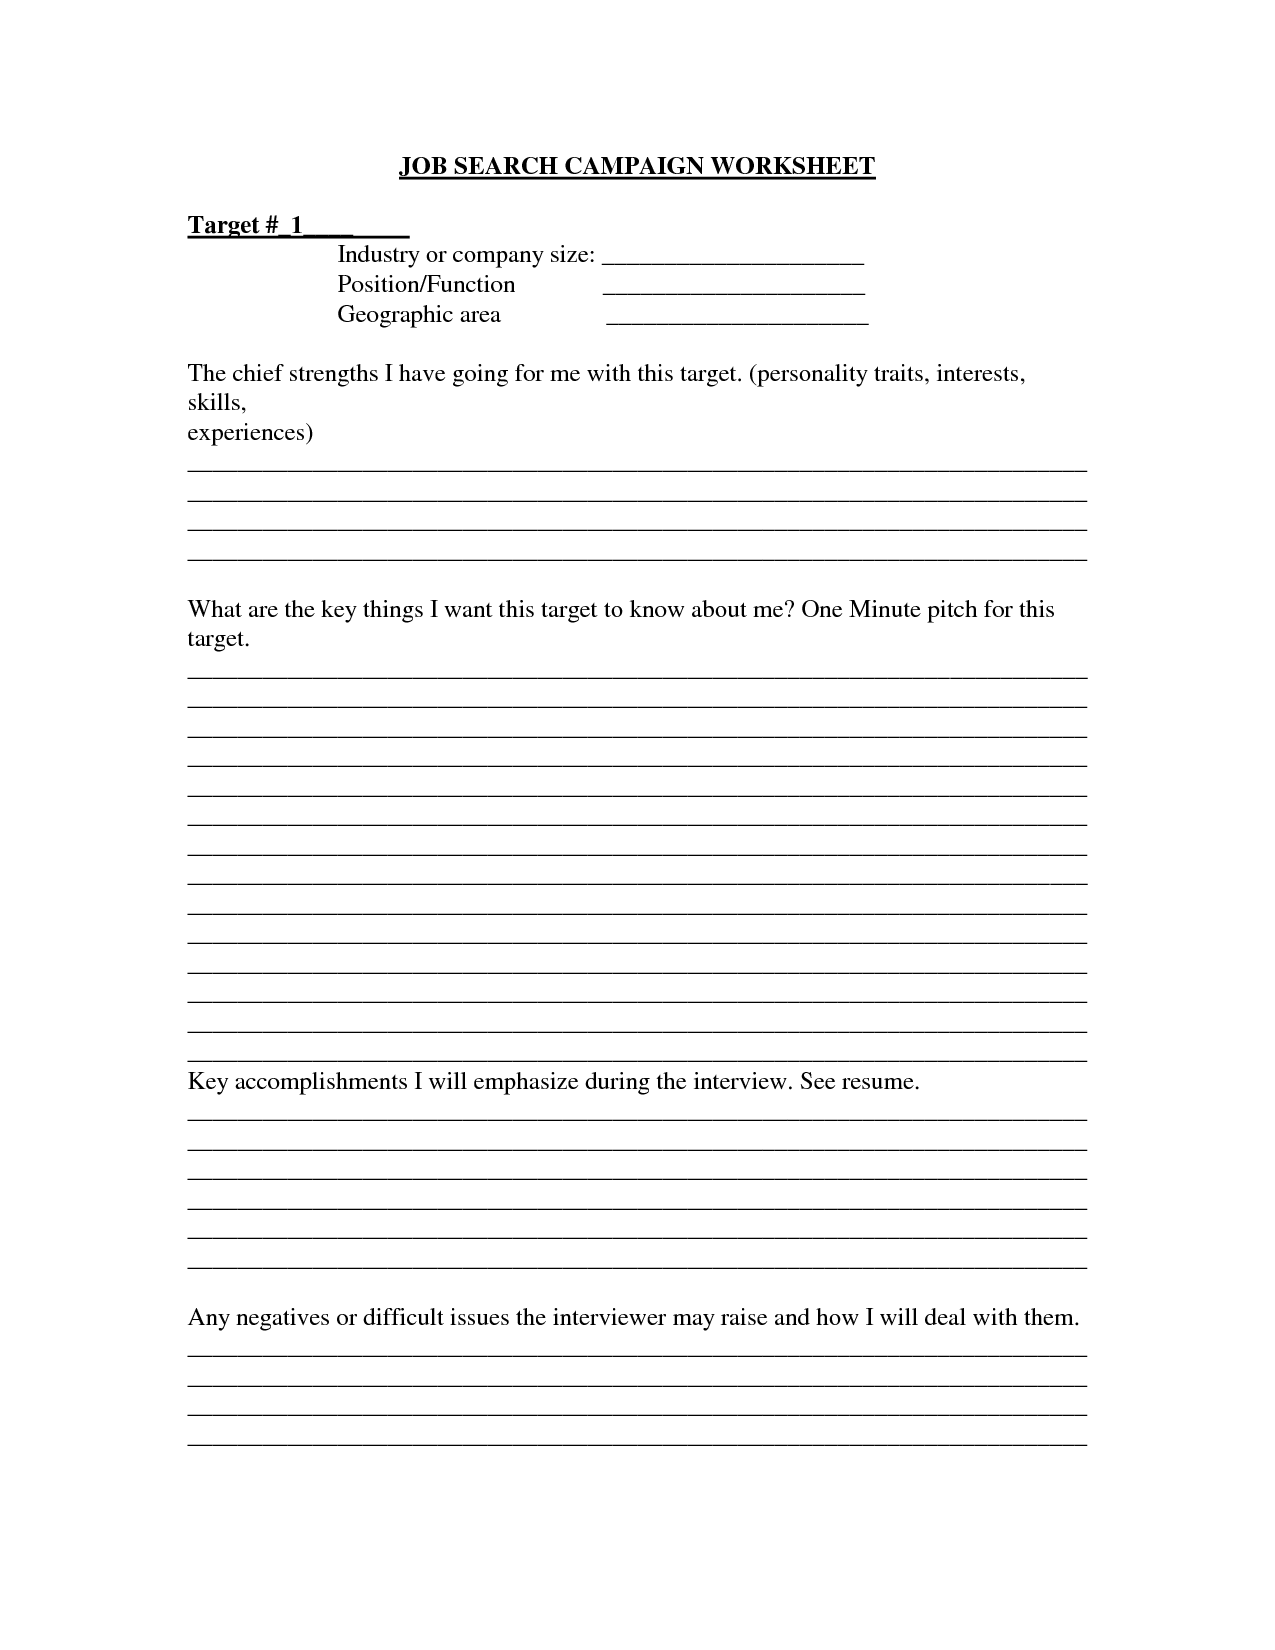 17 Best Images Of Job Search Elevator Pitch Worksheet